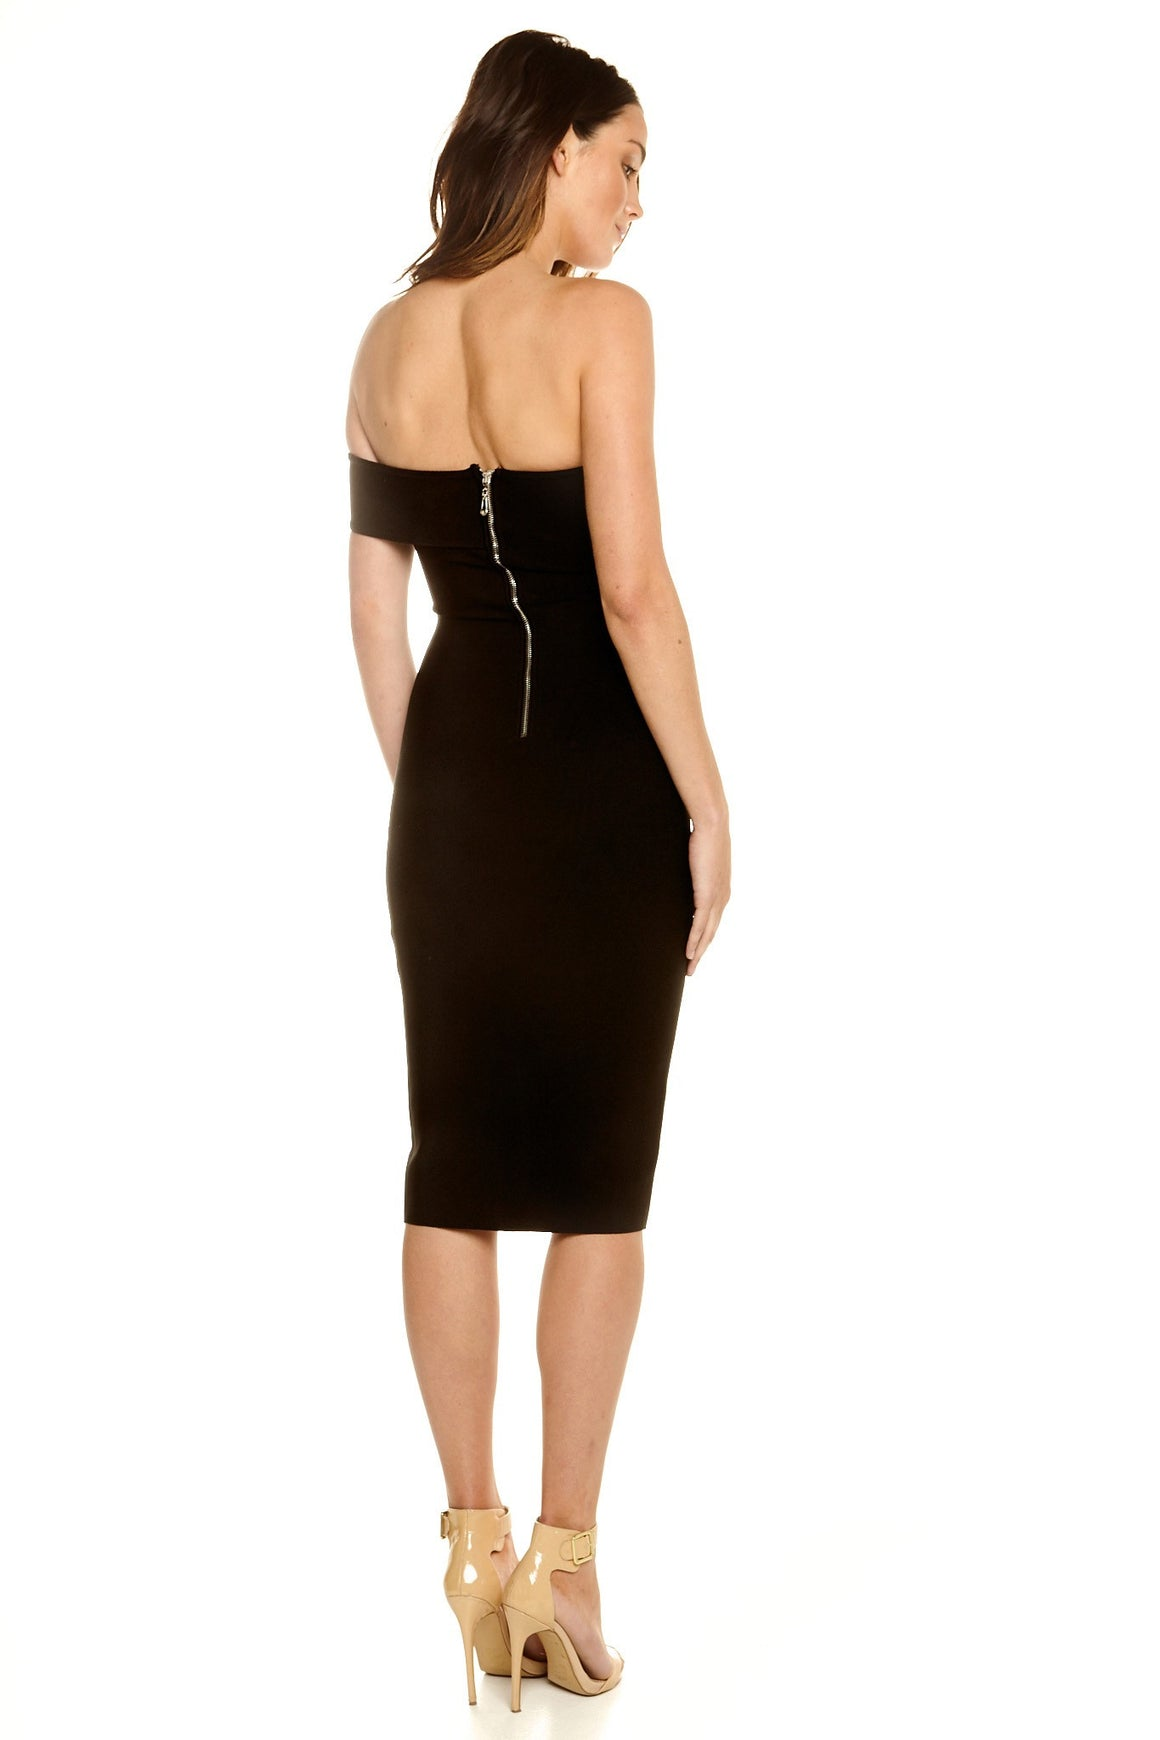 Tahne Off-Shoulder Bandage Dress - Black